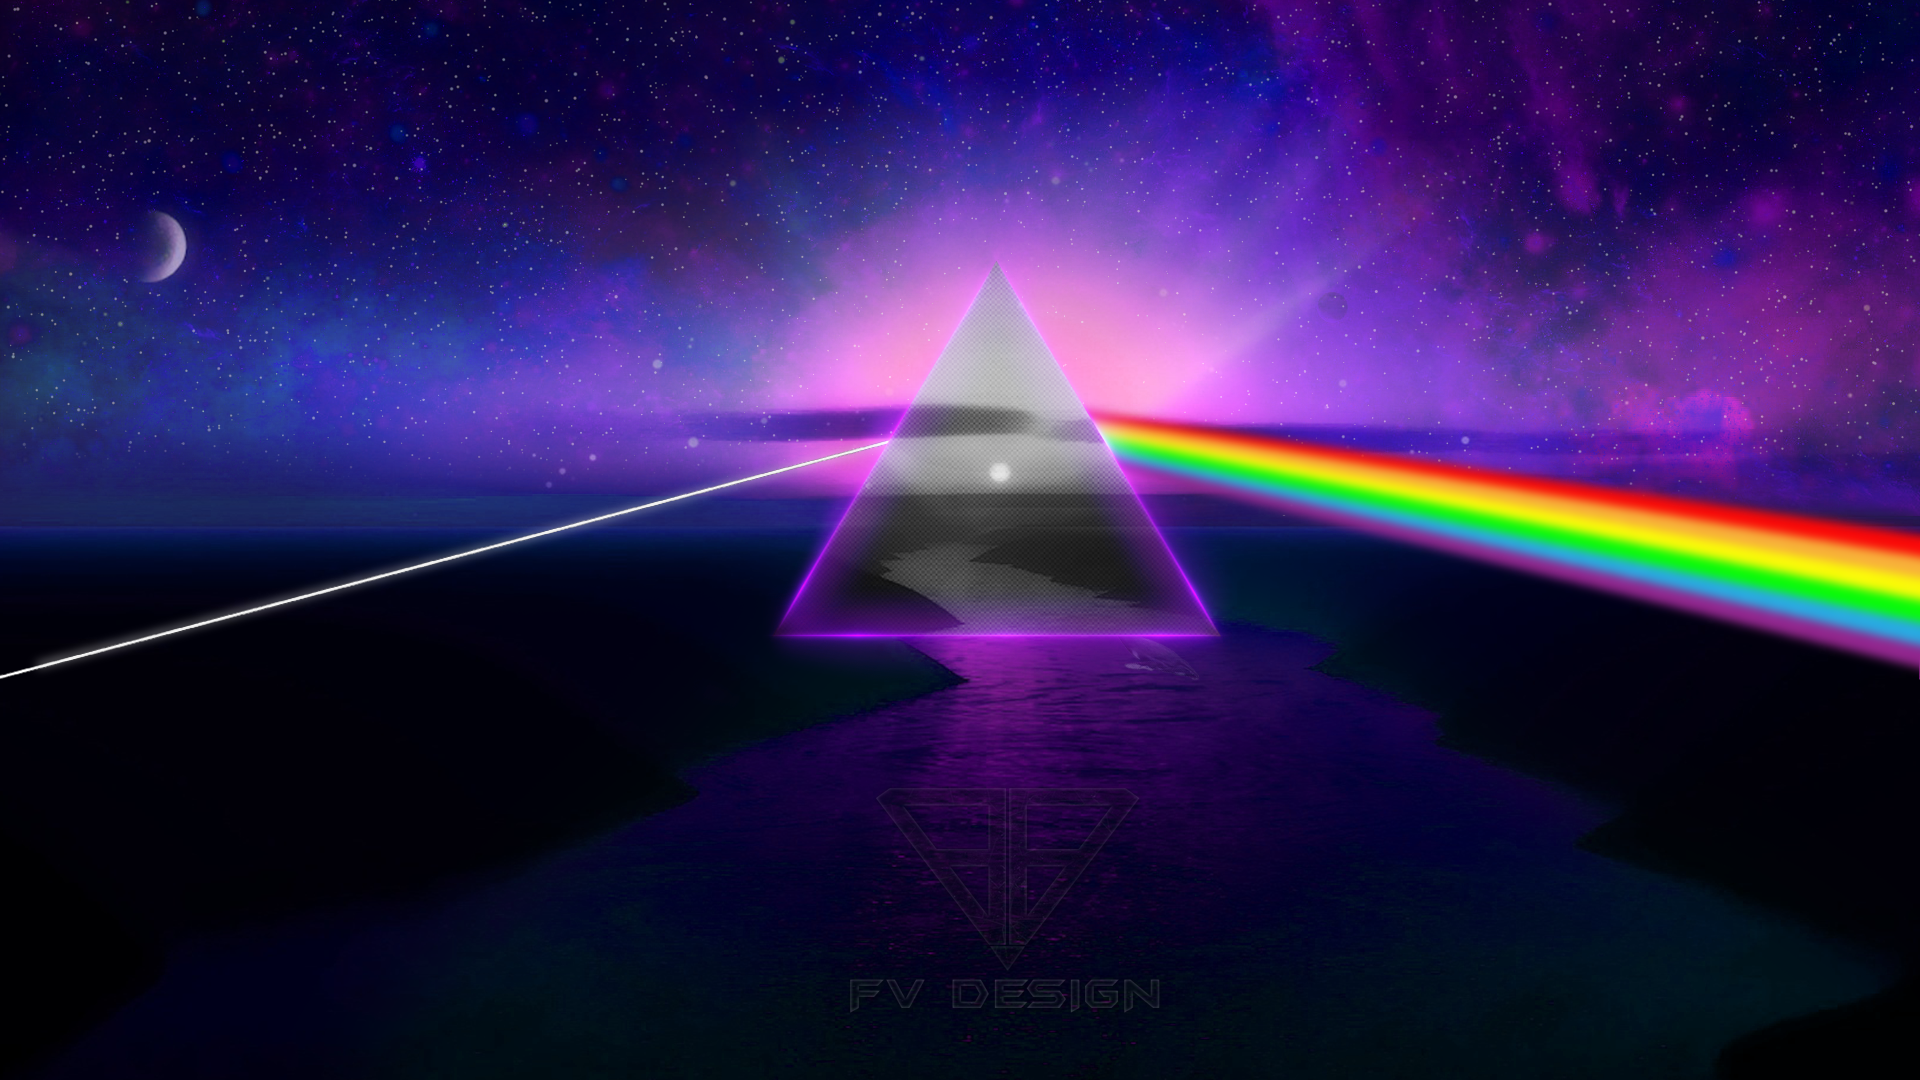 Deep Quotes Wallpapers Download Pink Floyd Dark Side Of The Moon Wallpaper Gallery